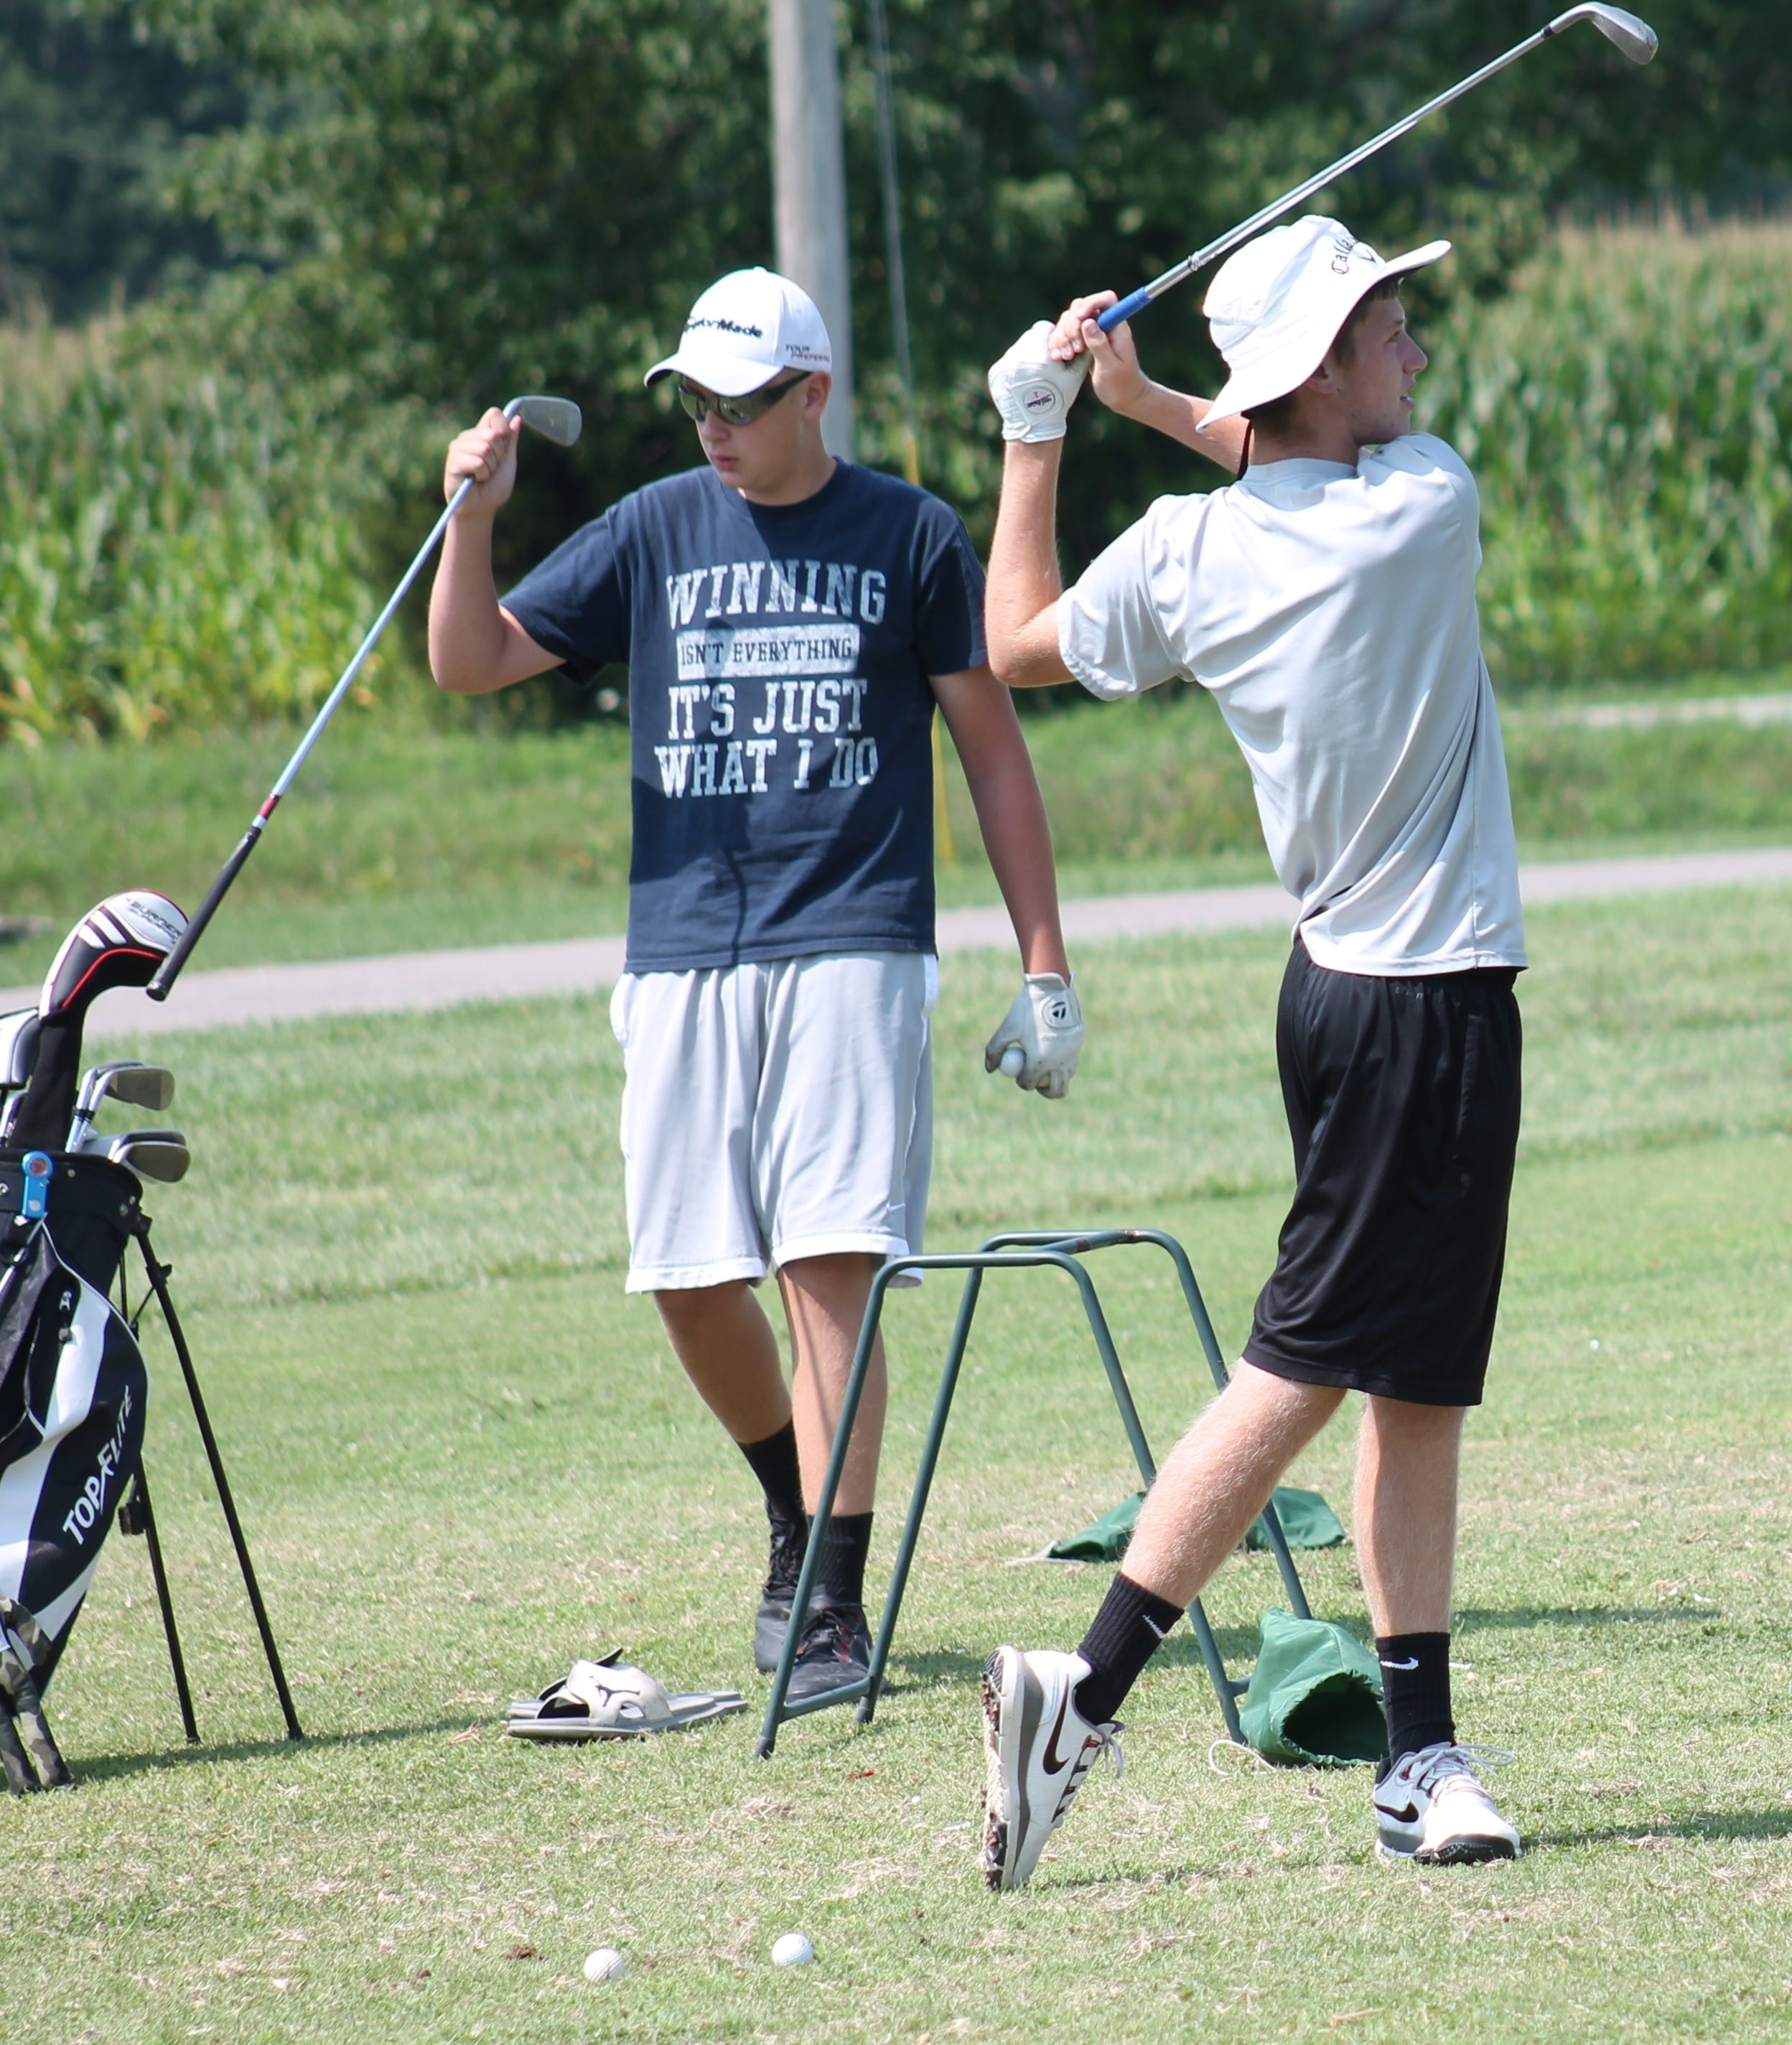 Bethel-Tate juniors Mitchell McElfresh (swinging) and Blake Combs get some work in on the range at Friendly Meadows Aug. 1.